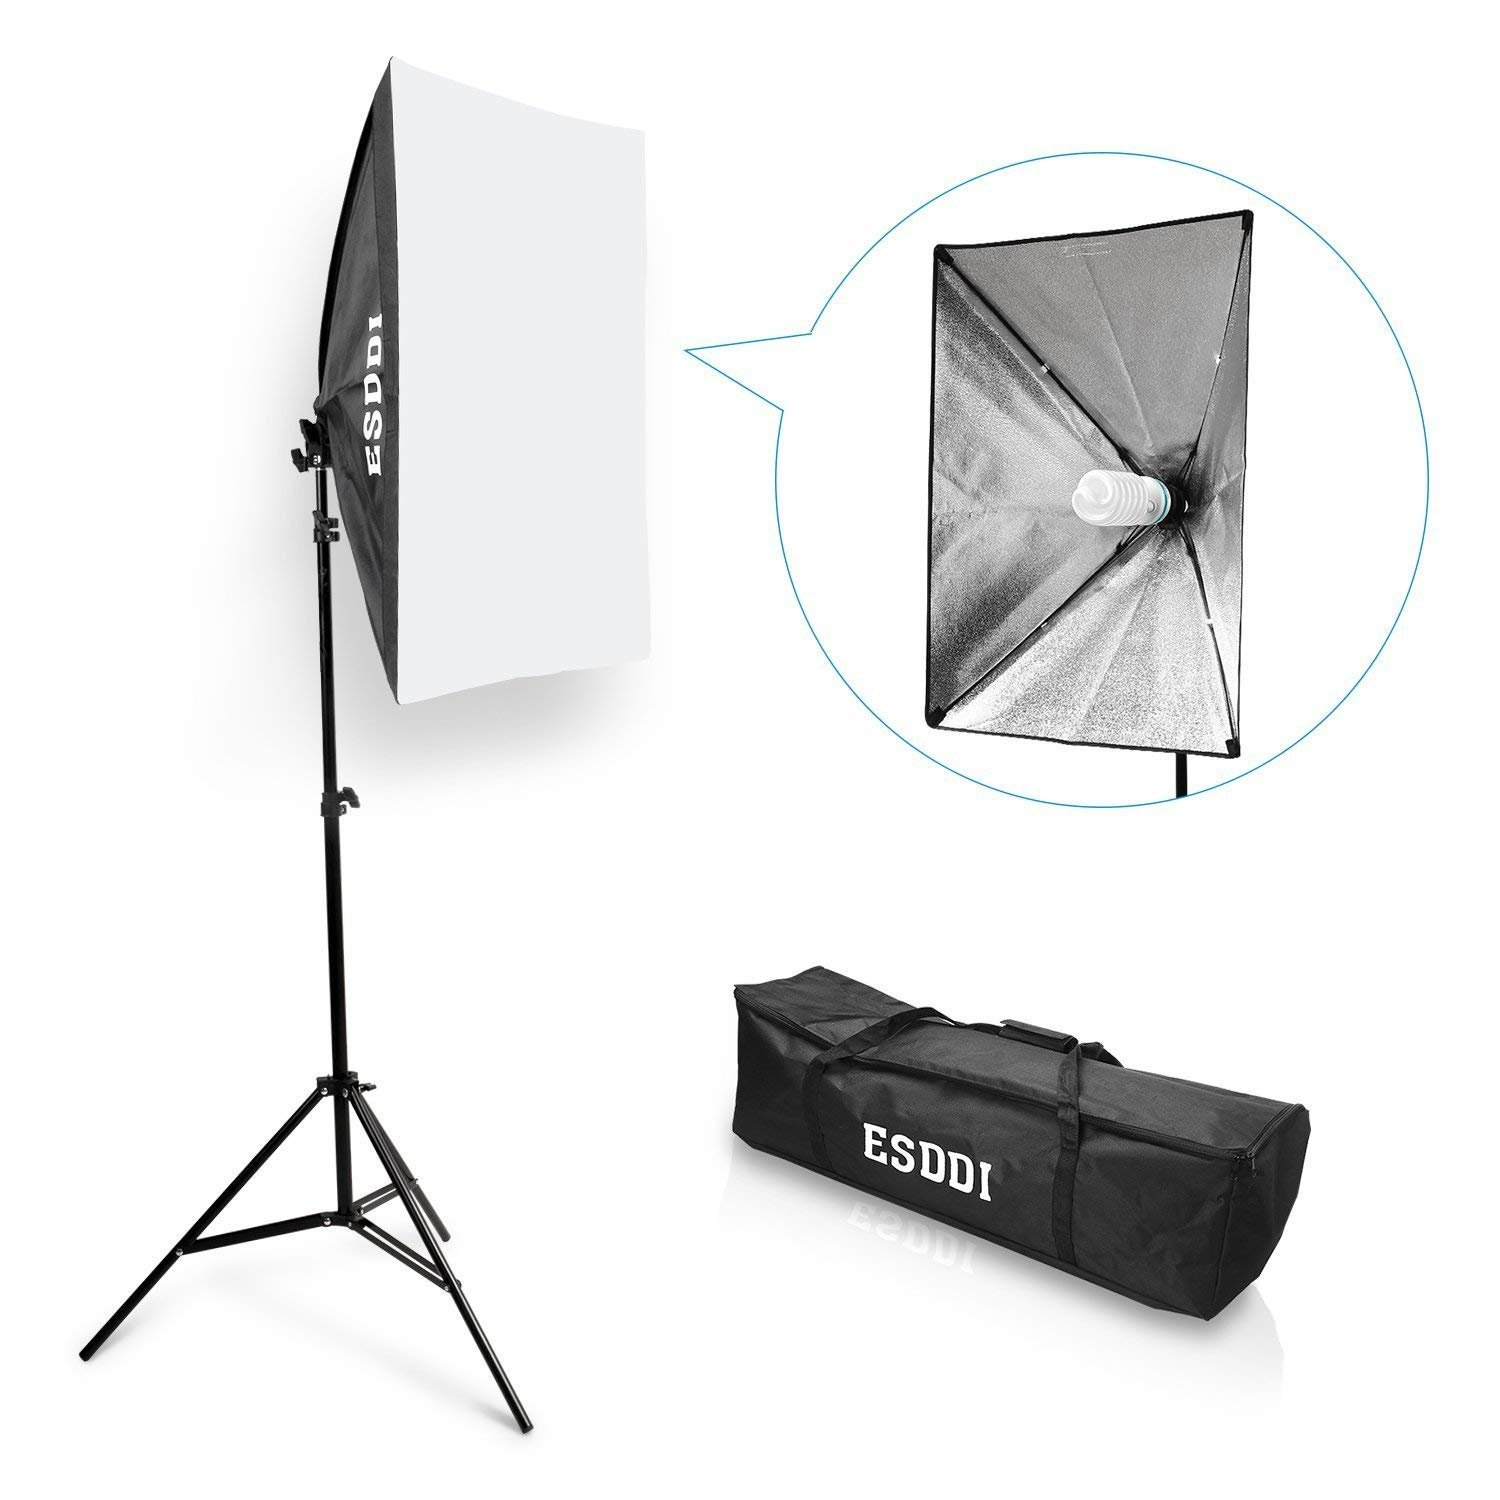 ESDDI 20''X28'' Softbox Portable Photography Lighting Kit Photo Equipment Studio Light 20''X28'' Portrait Video Advertising Shooting by ESDDI